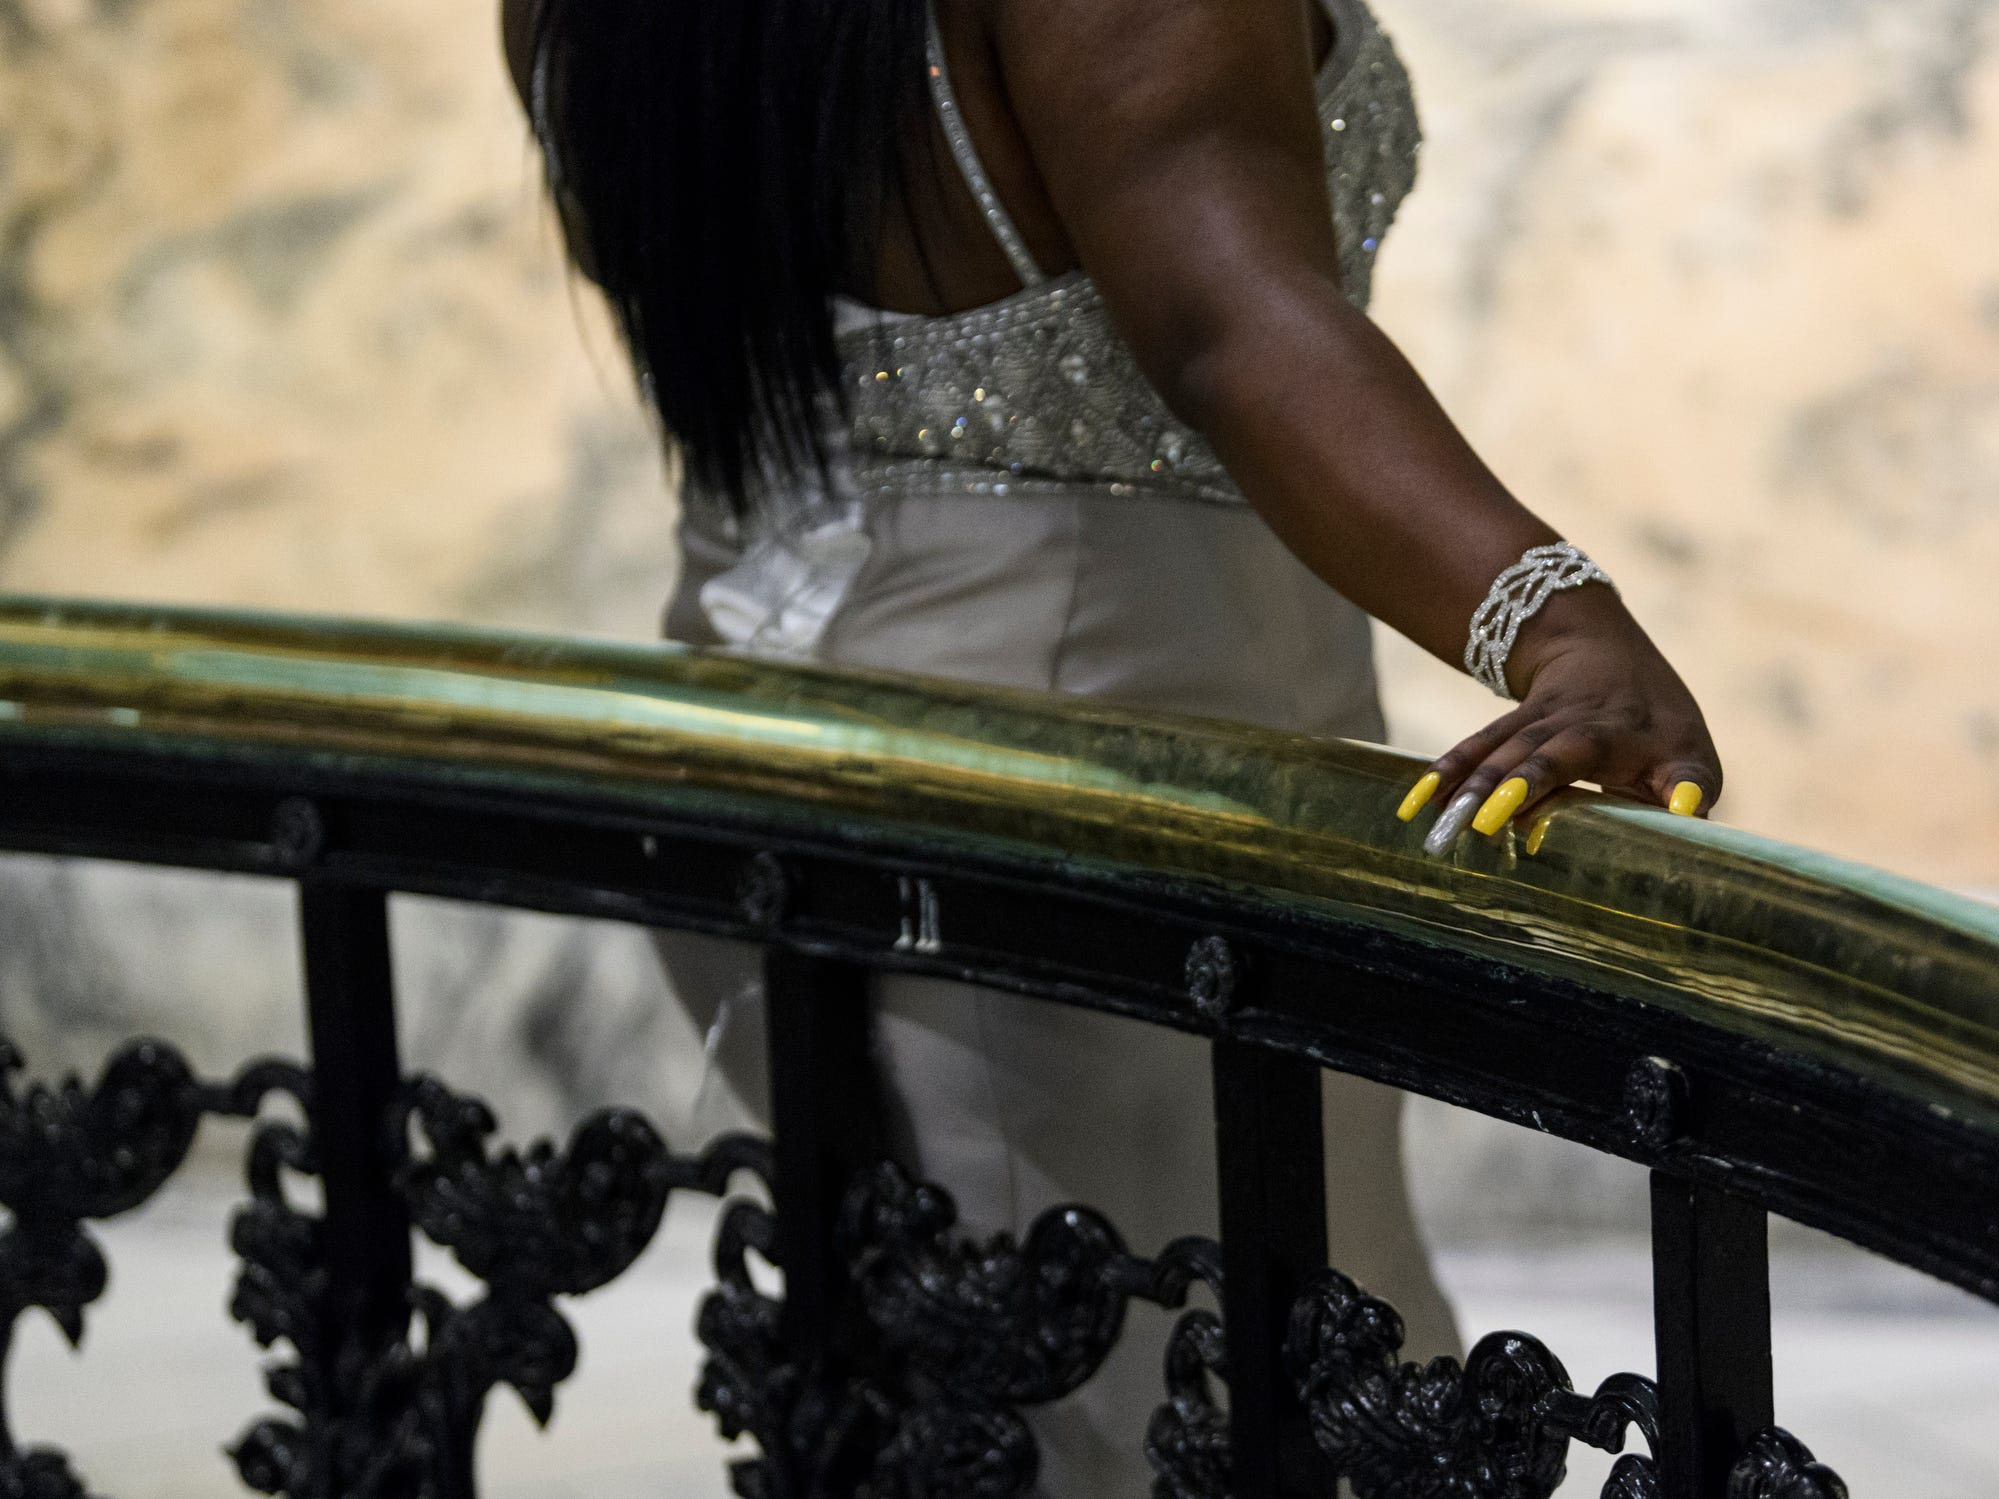 Taesheanna Brown poses for a picture on the second floor of the Old Vanderburgh County Courthouse during Bosse High School's prom in downtown Evansville, Ind., Saturday, April 6, 2019.